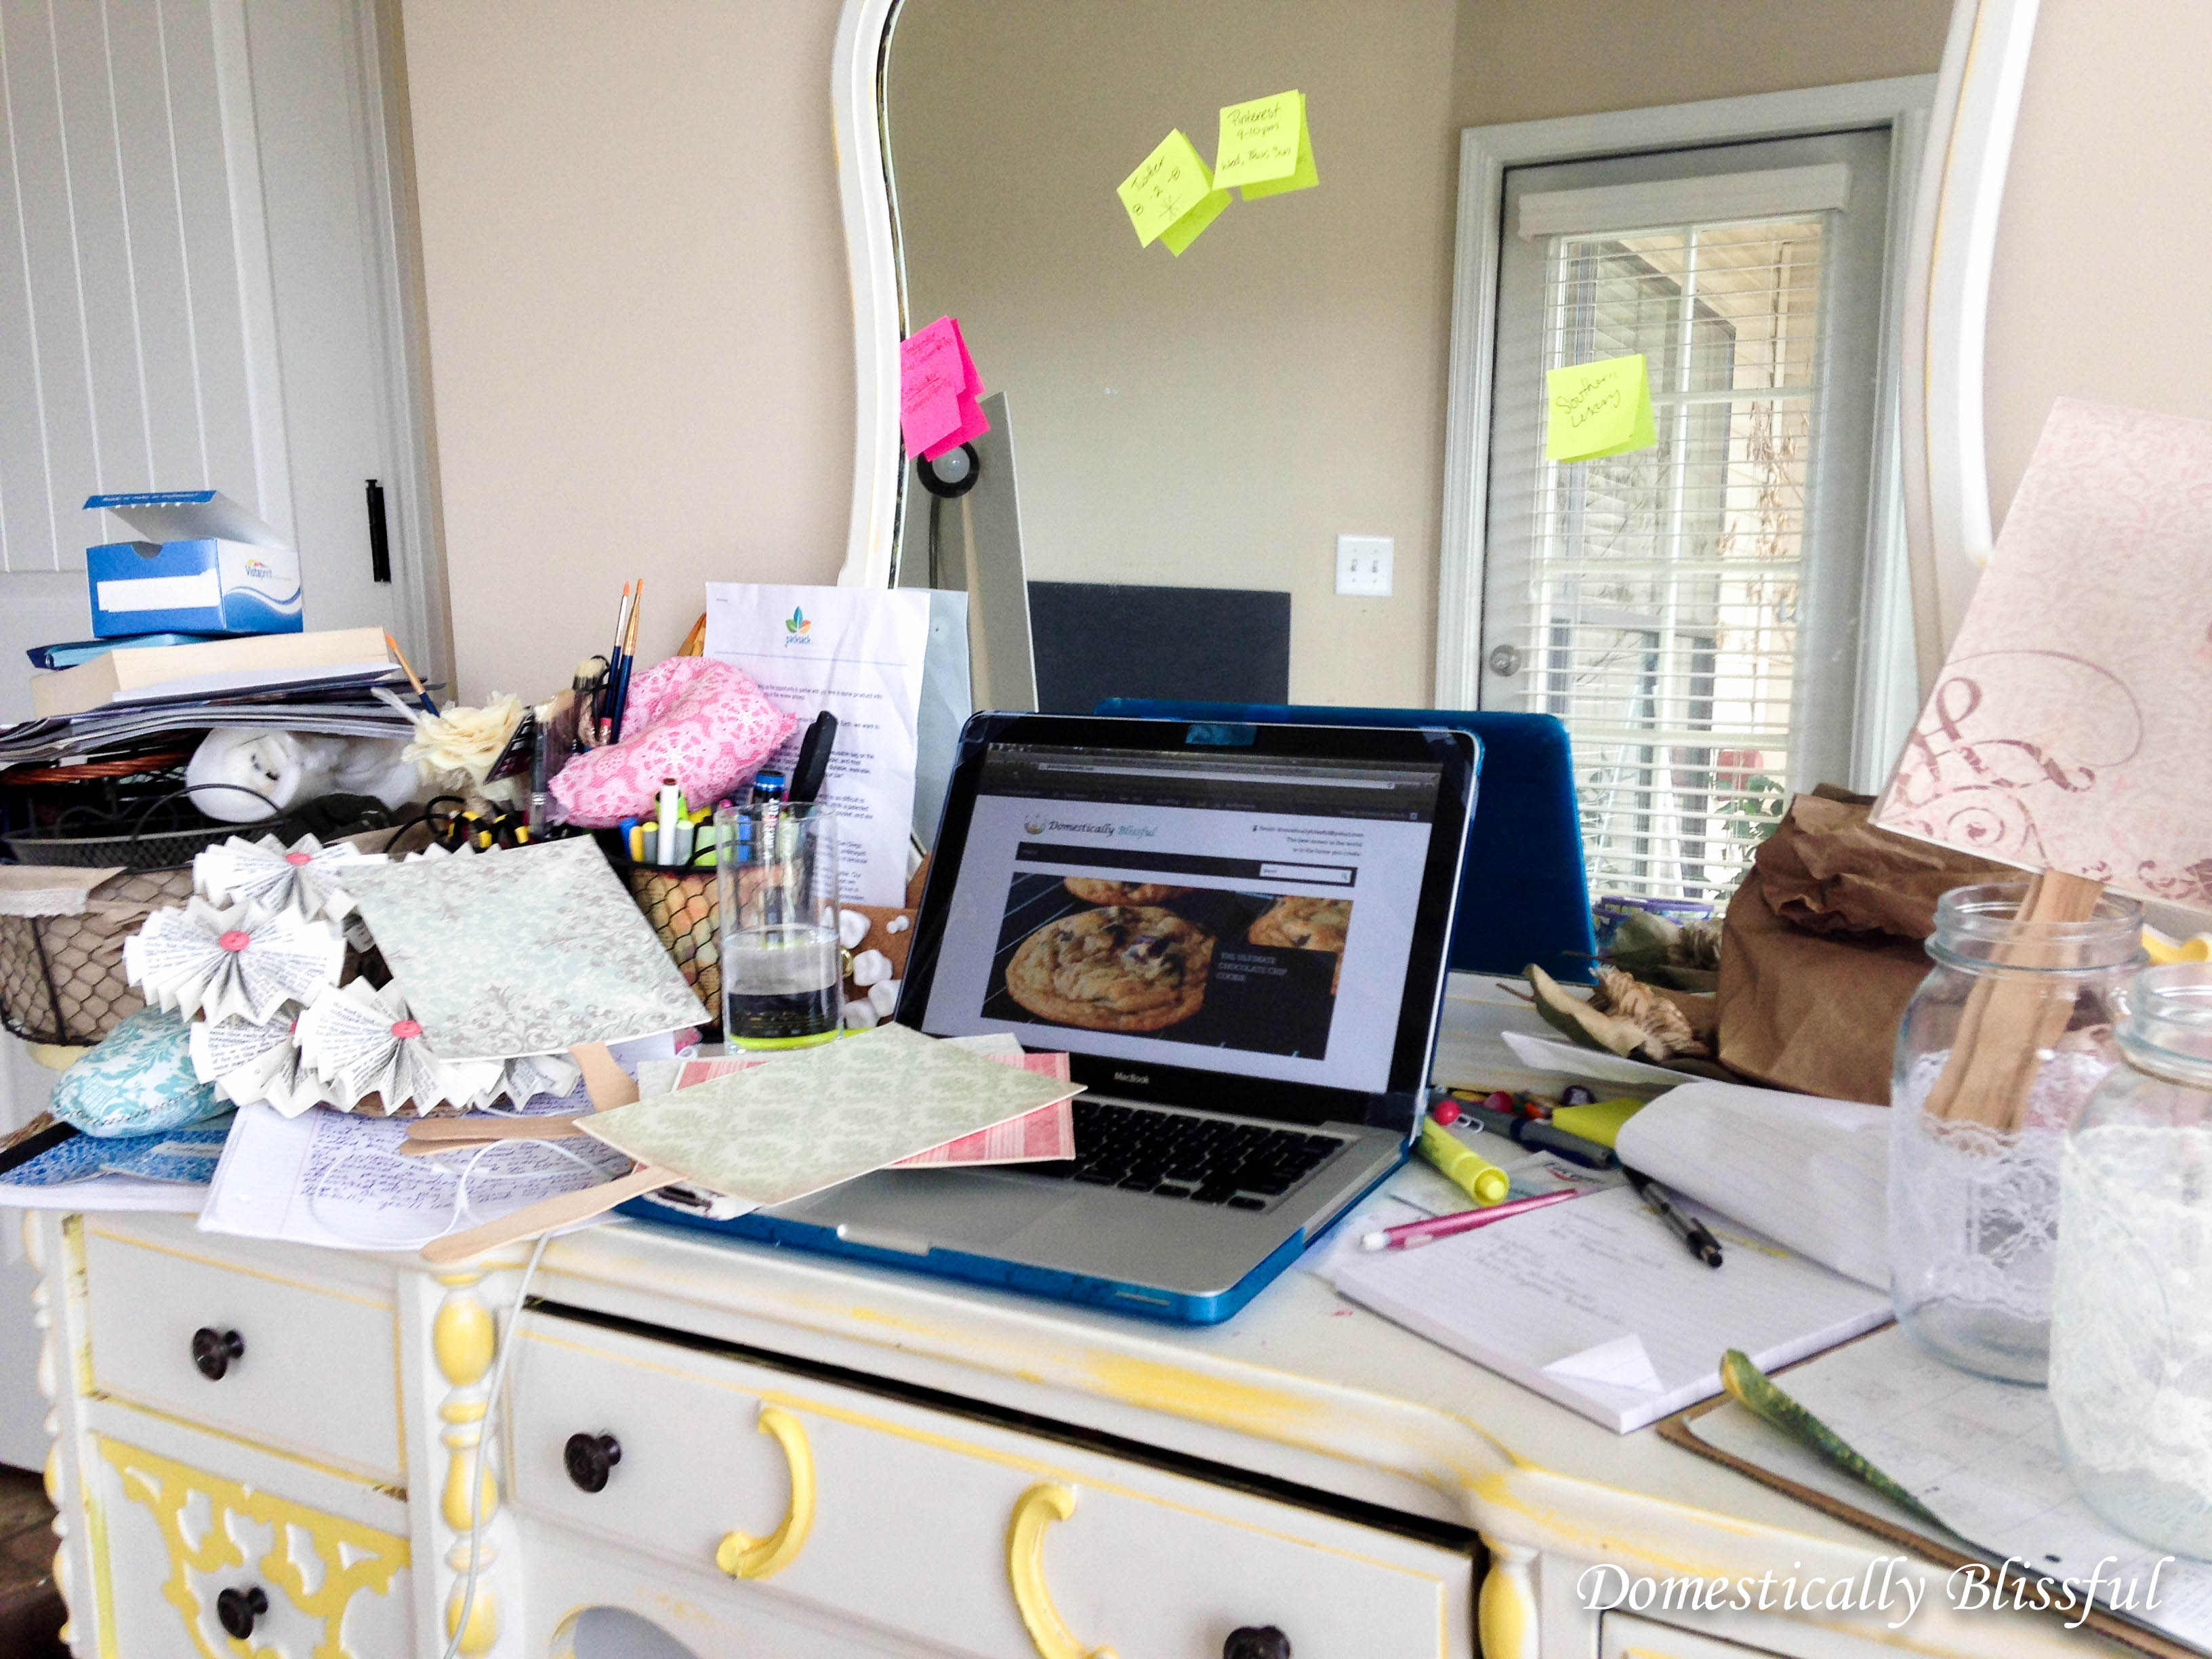 I promise my desk is not always this messy